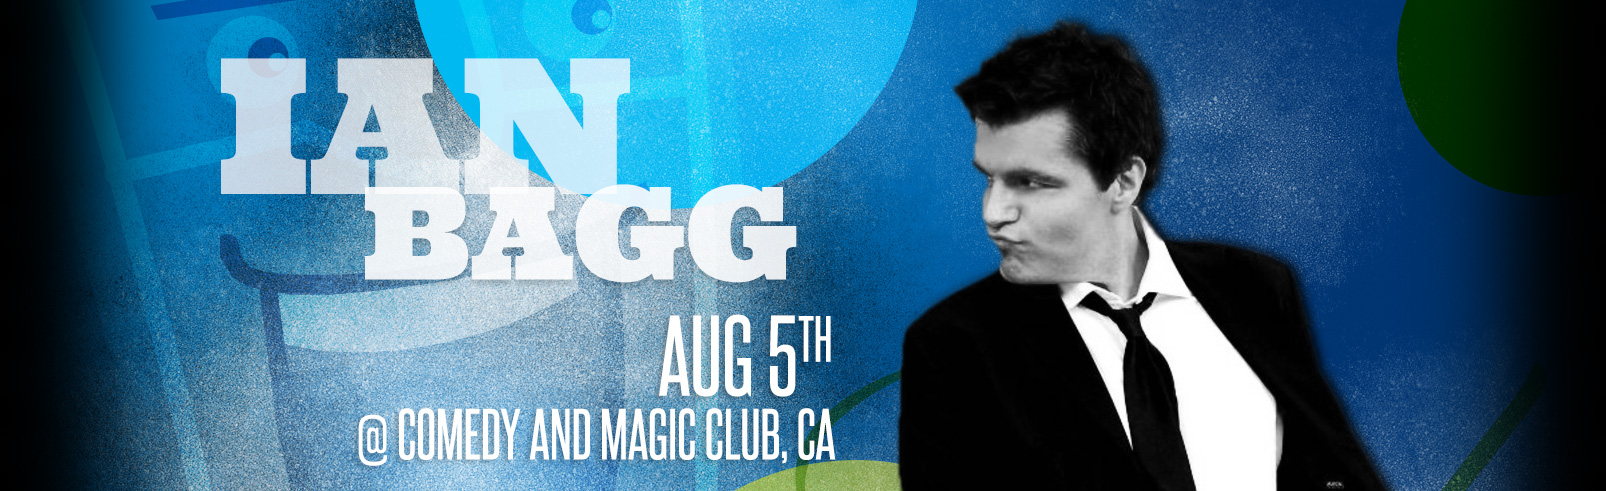 Ian Bagg @ Comedy and Magic Club